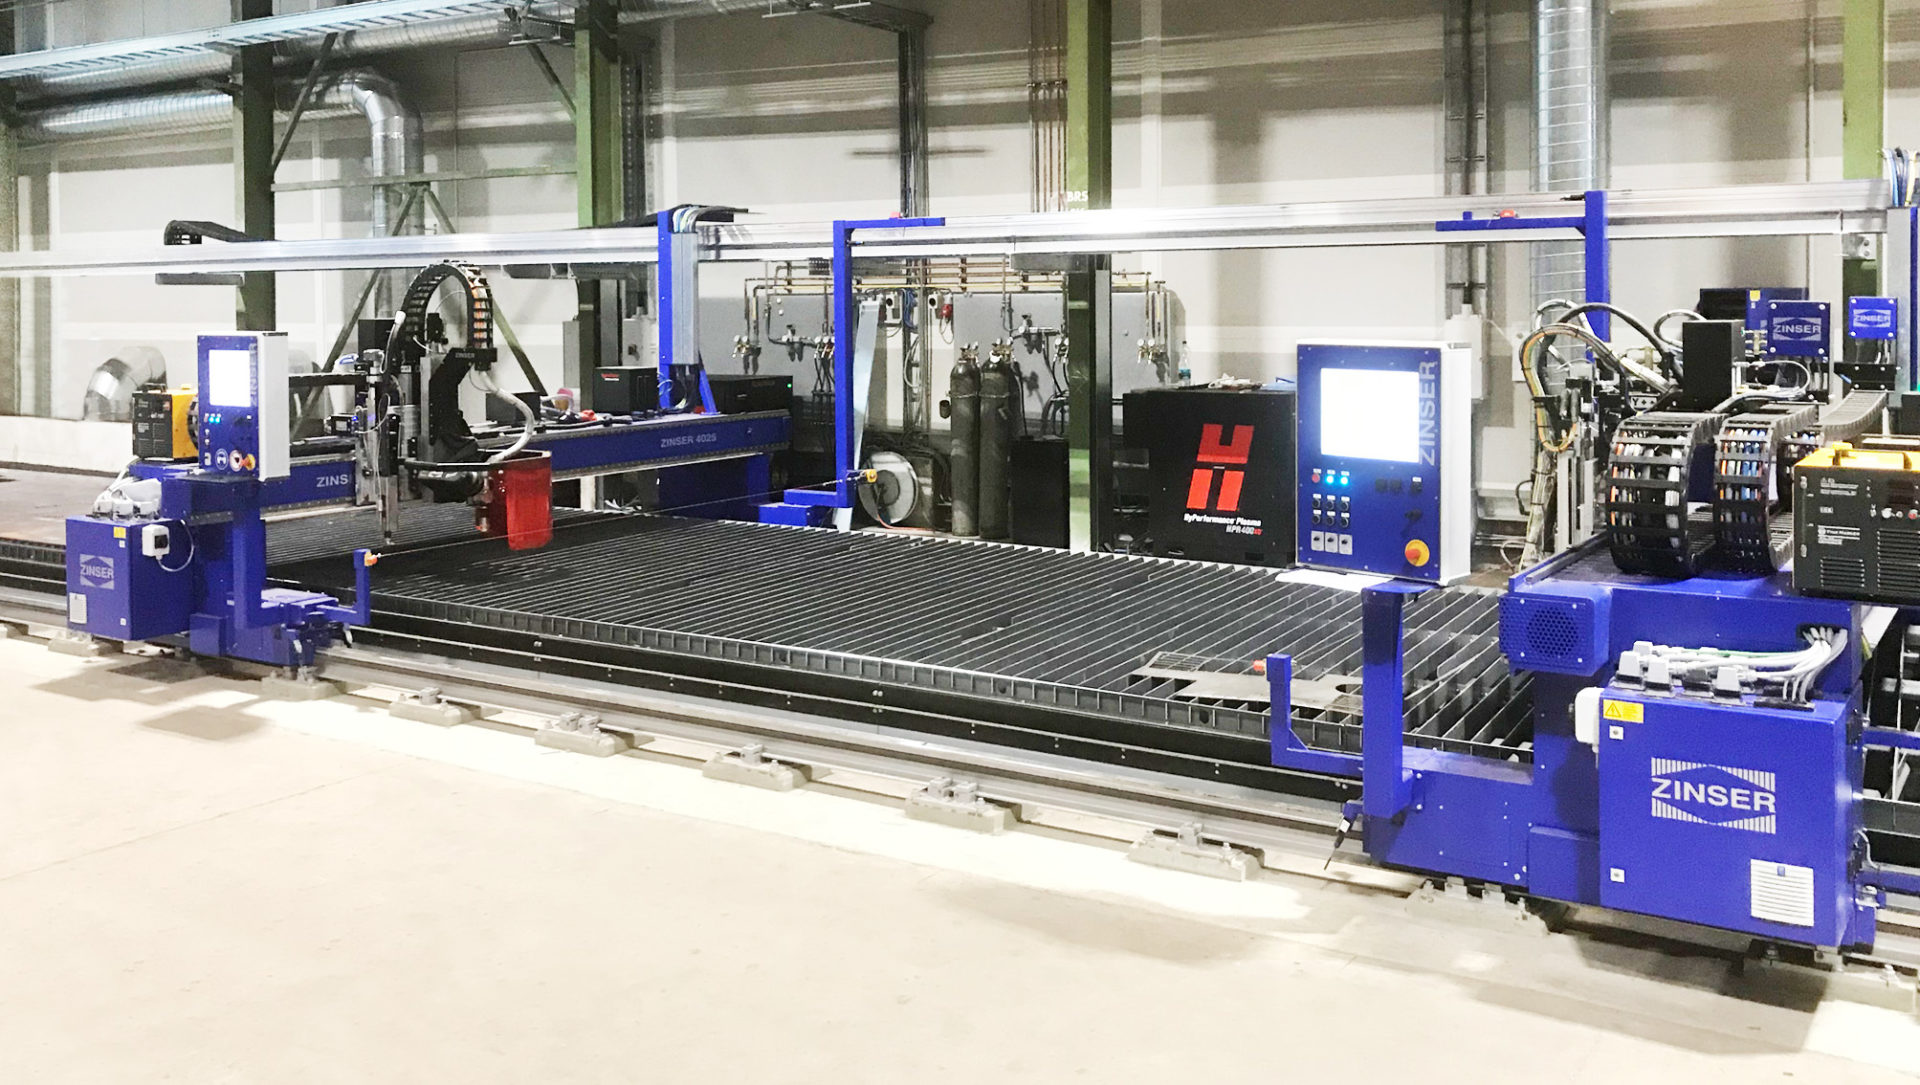 [:de] Zwei ZINSER Schneidmaschinen, ausgestattet mit einem Fasenaggregat, Autogen- und Plasmabrennern. [:en] Two ZINSER cutting machines equipped with a plasma bevel head, oxy-fuel and plasma torches